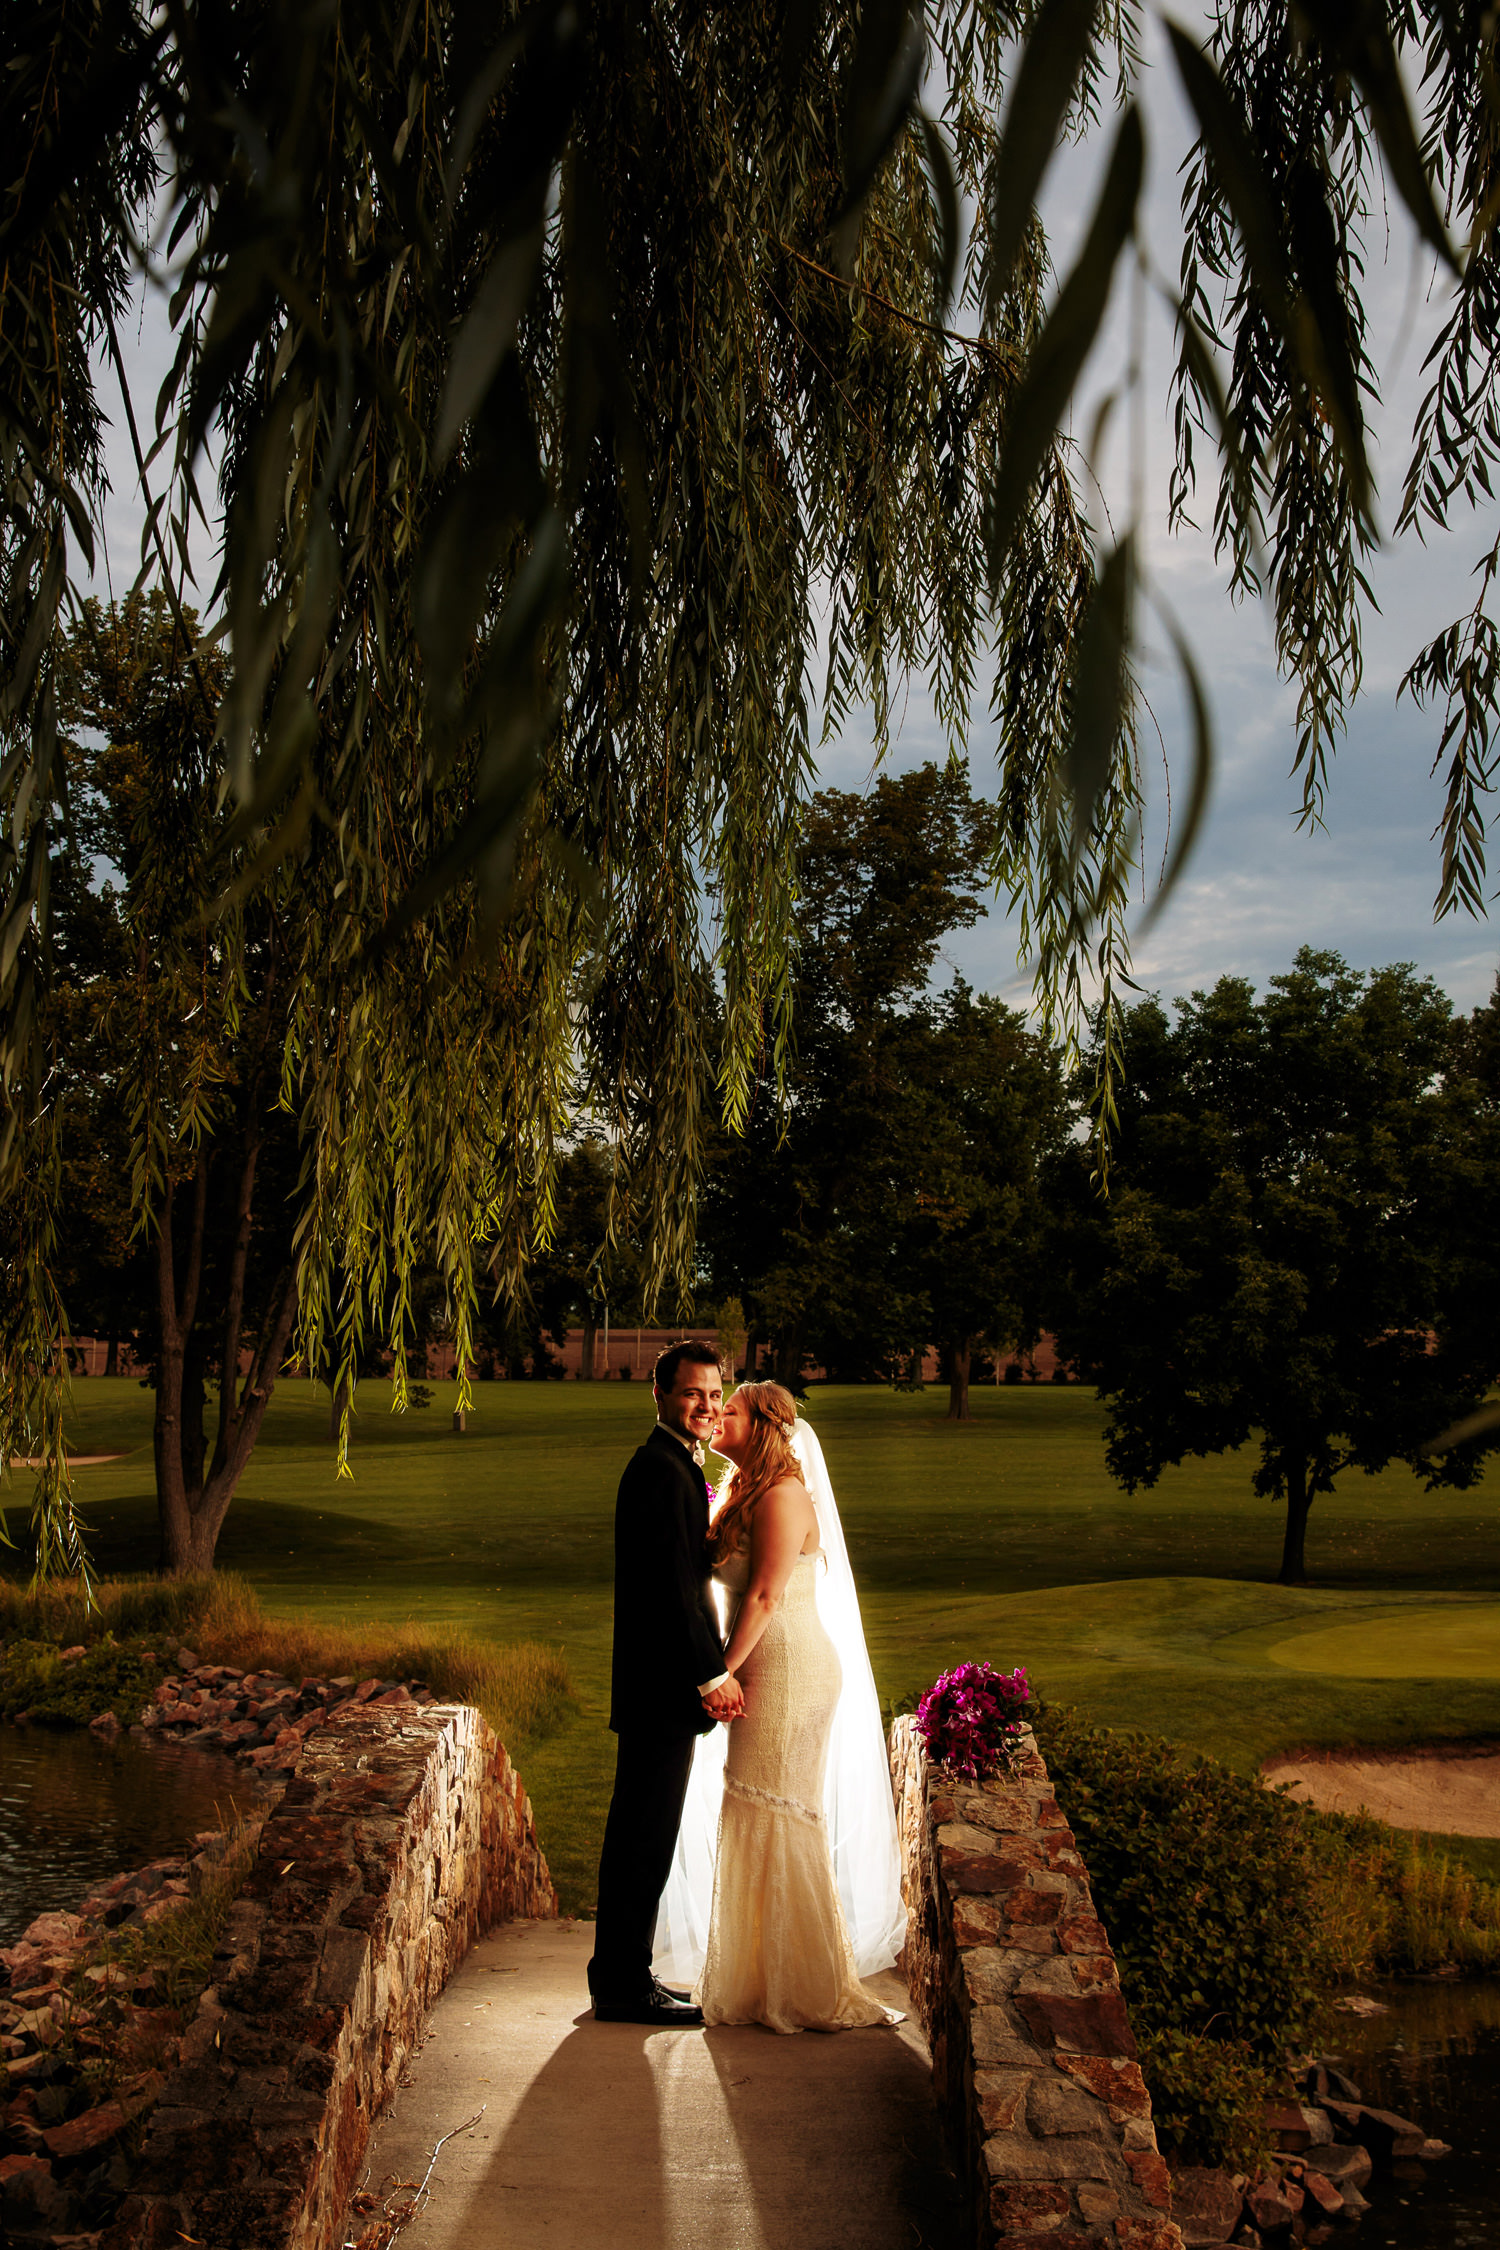 lakewood-country-club-wedding-photographer-tomKphoto-021.jpg